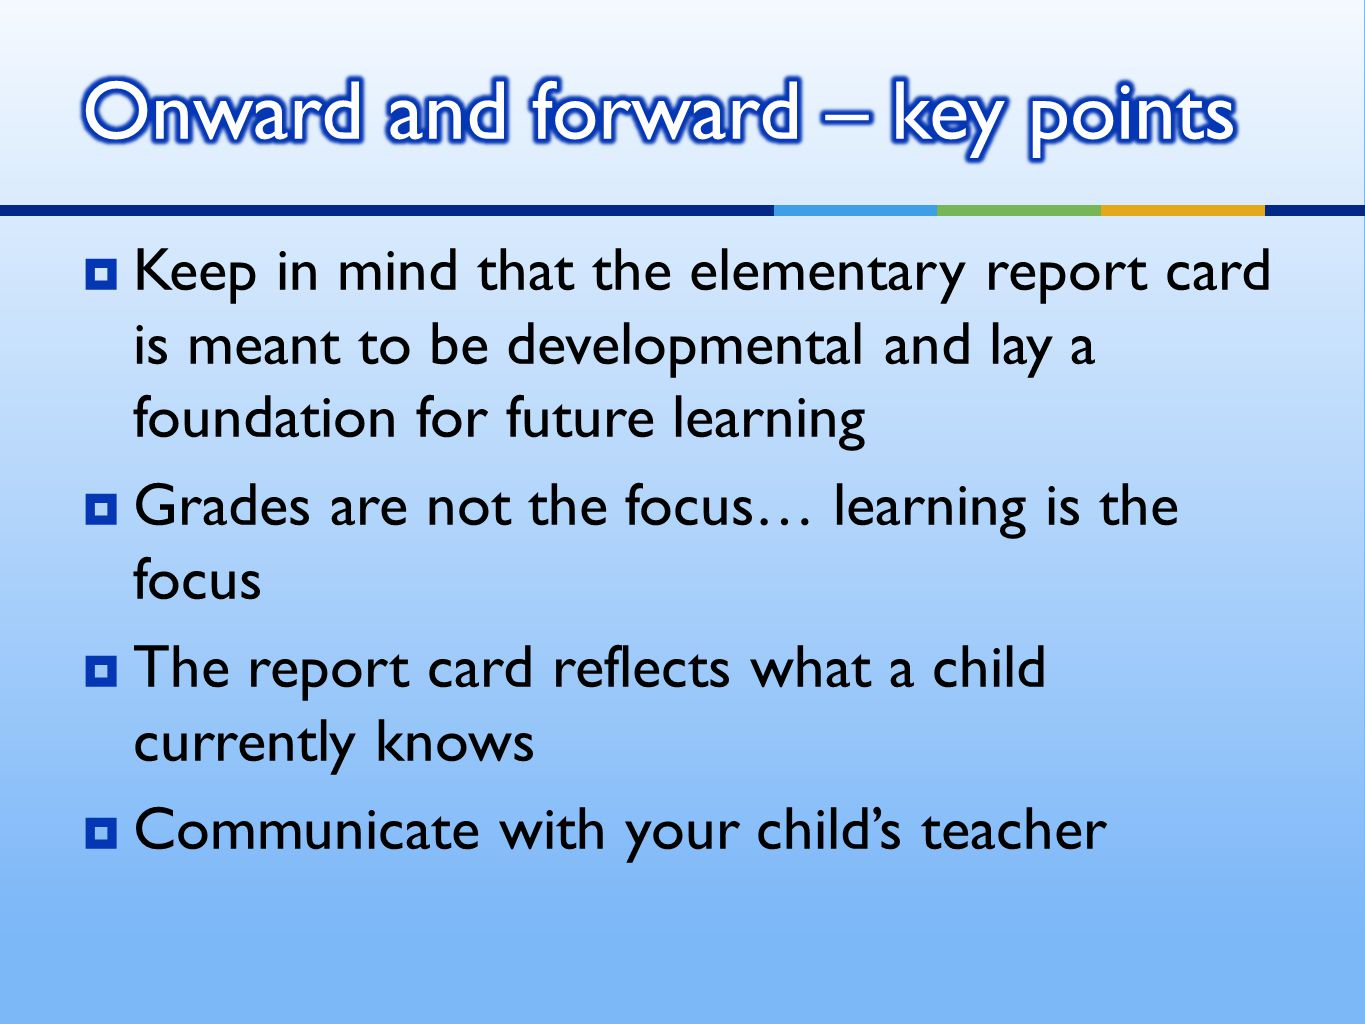  Keep in mind that the elementary report card is meant to be developmental and lay a foundation for future learning  Grades are not the focus… learning is the focus  The report card reflects what a child currently knows  Communicate with your child's teacher